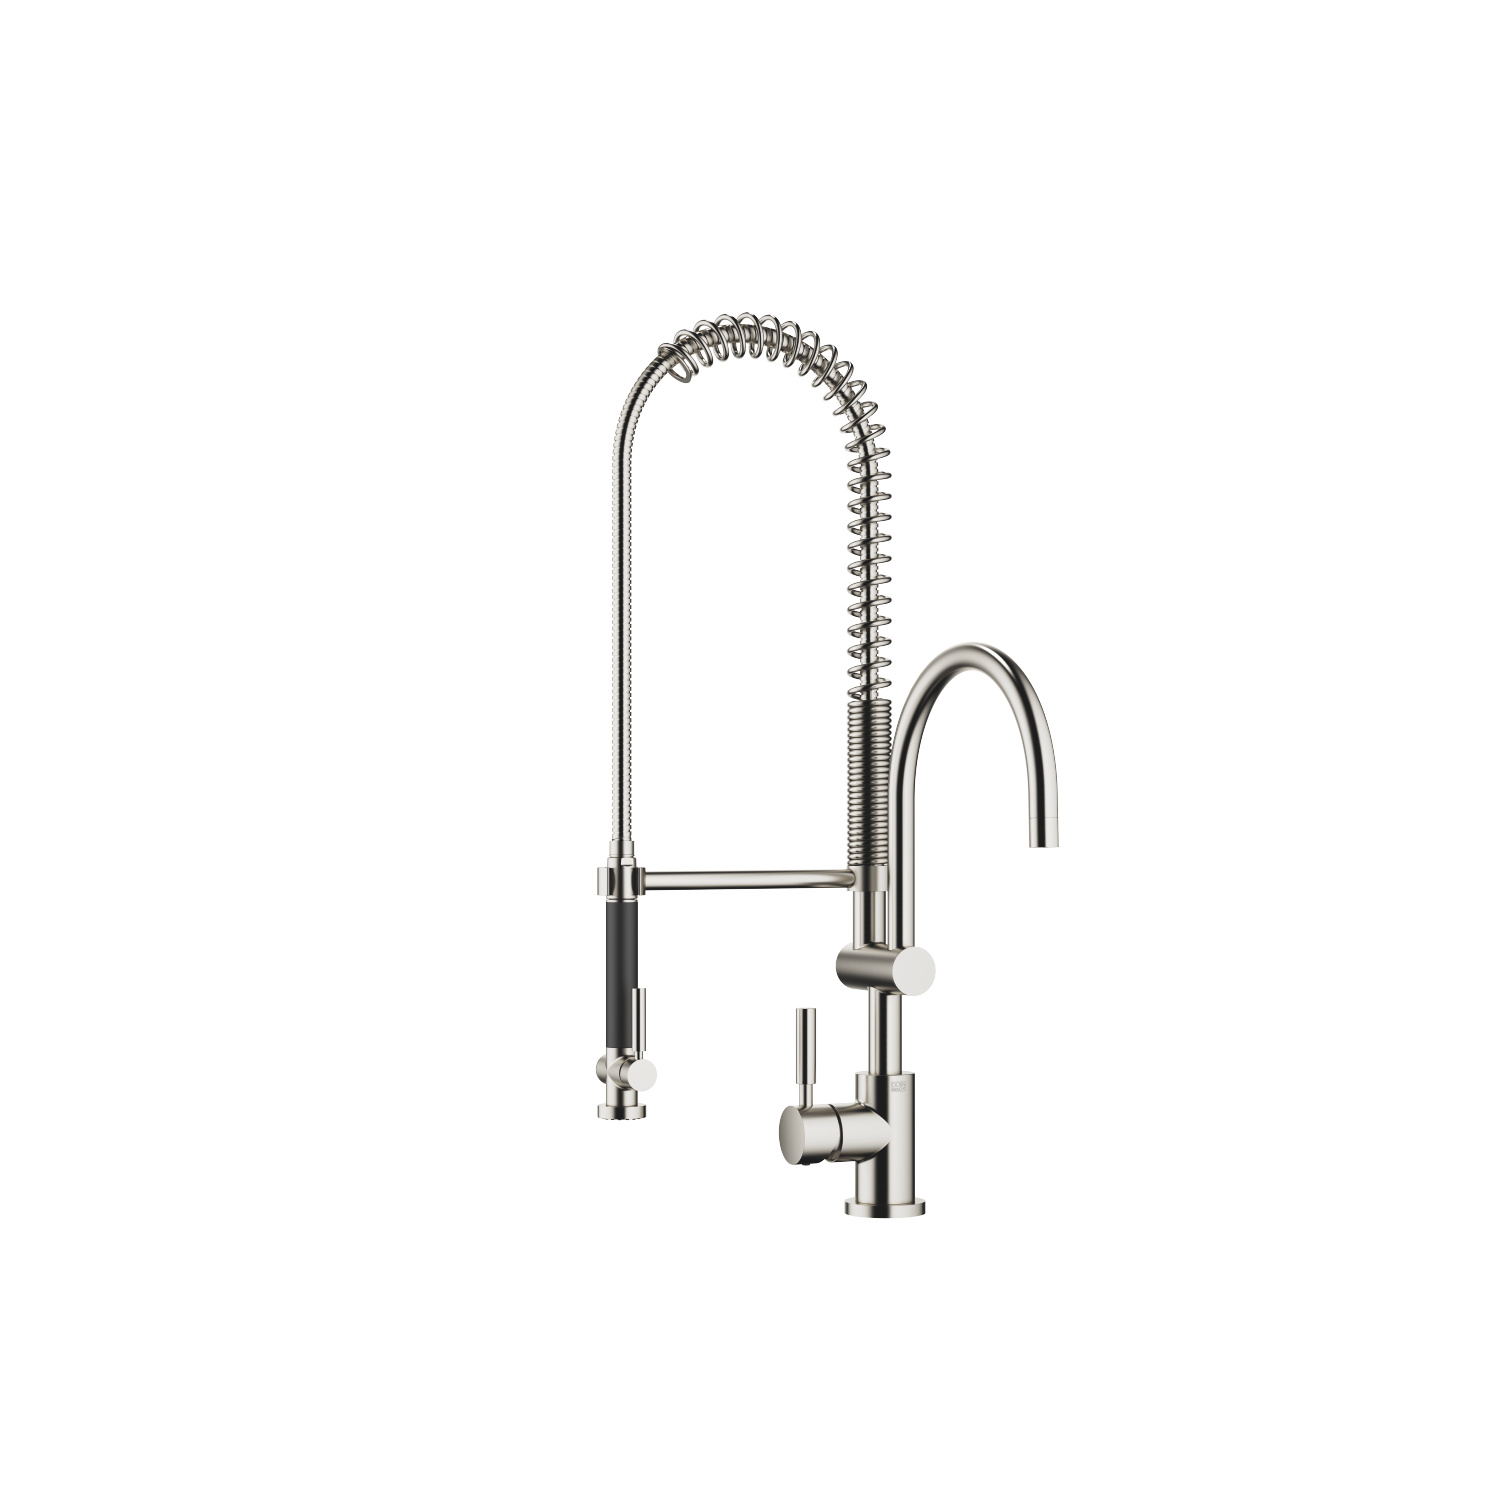 Profi single-lever mixer with lever on left - platinum matt